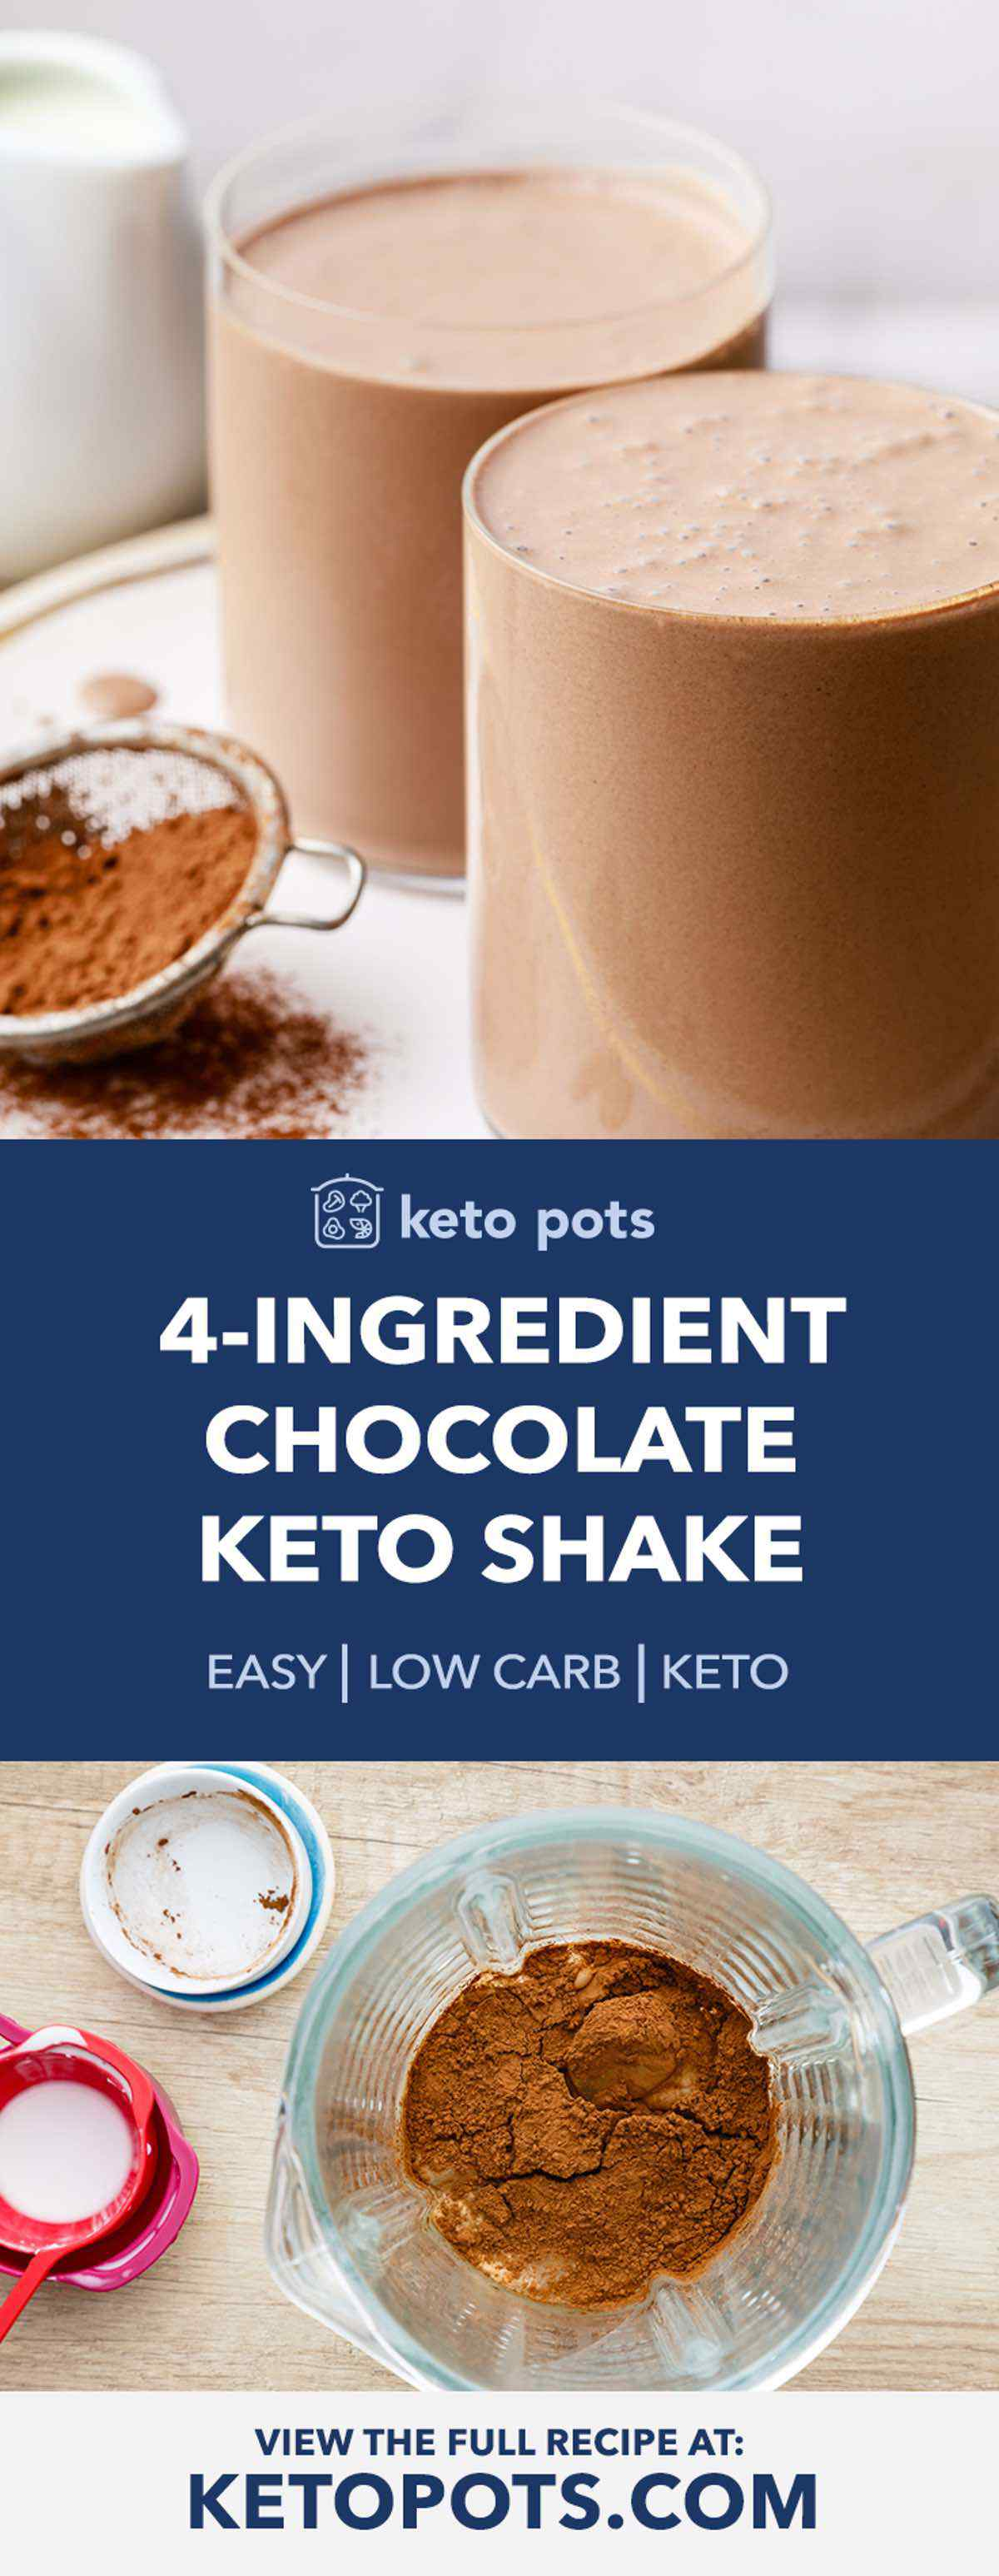 4-Ingredient Keto Chocolate Shake